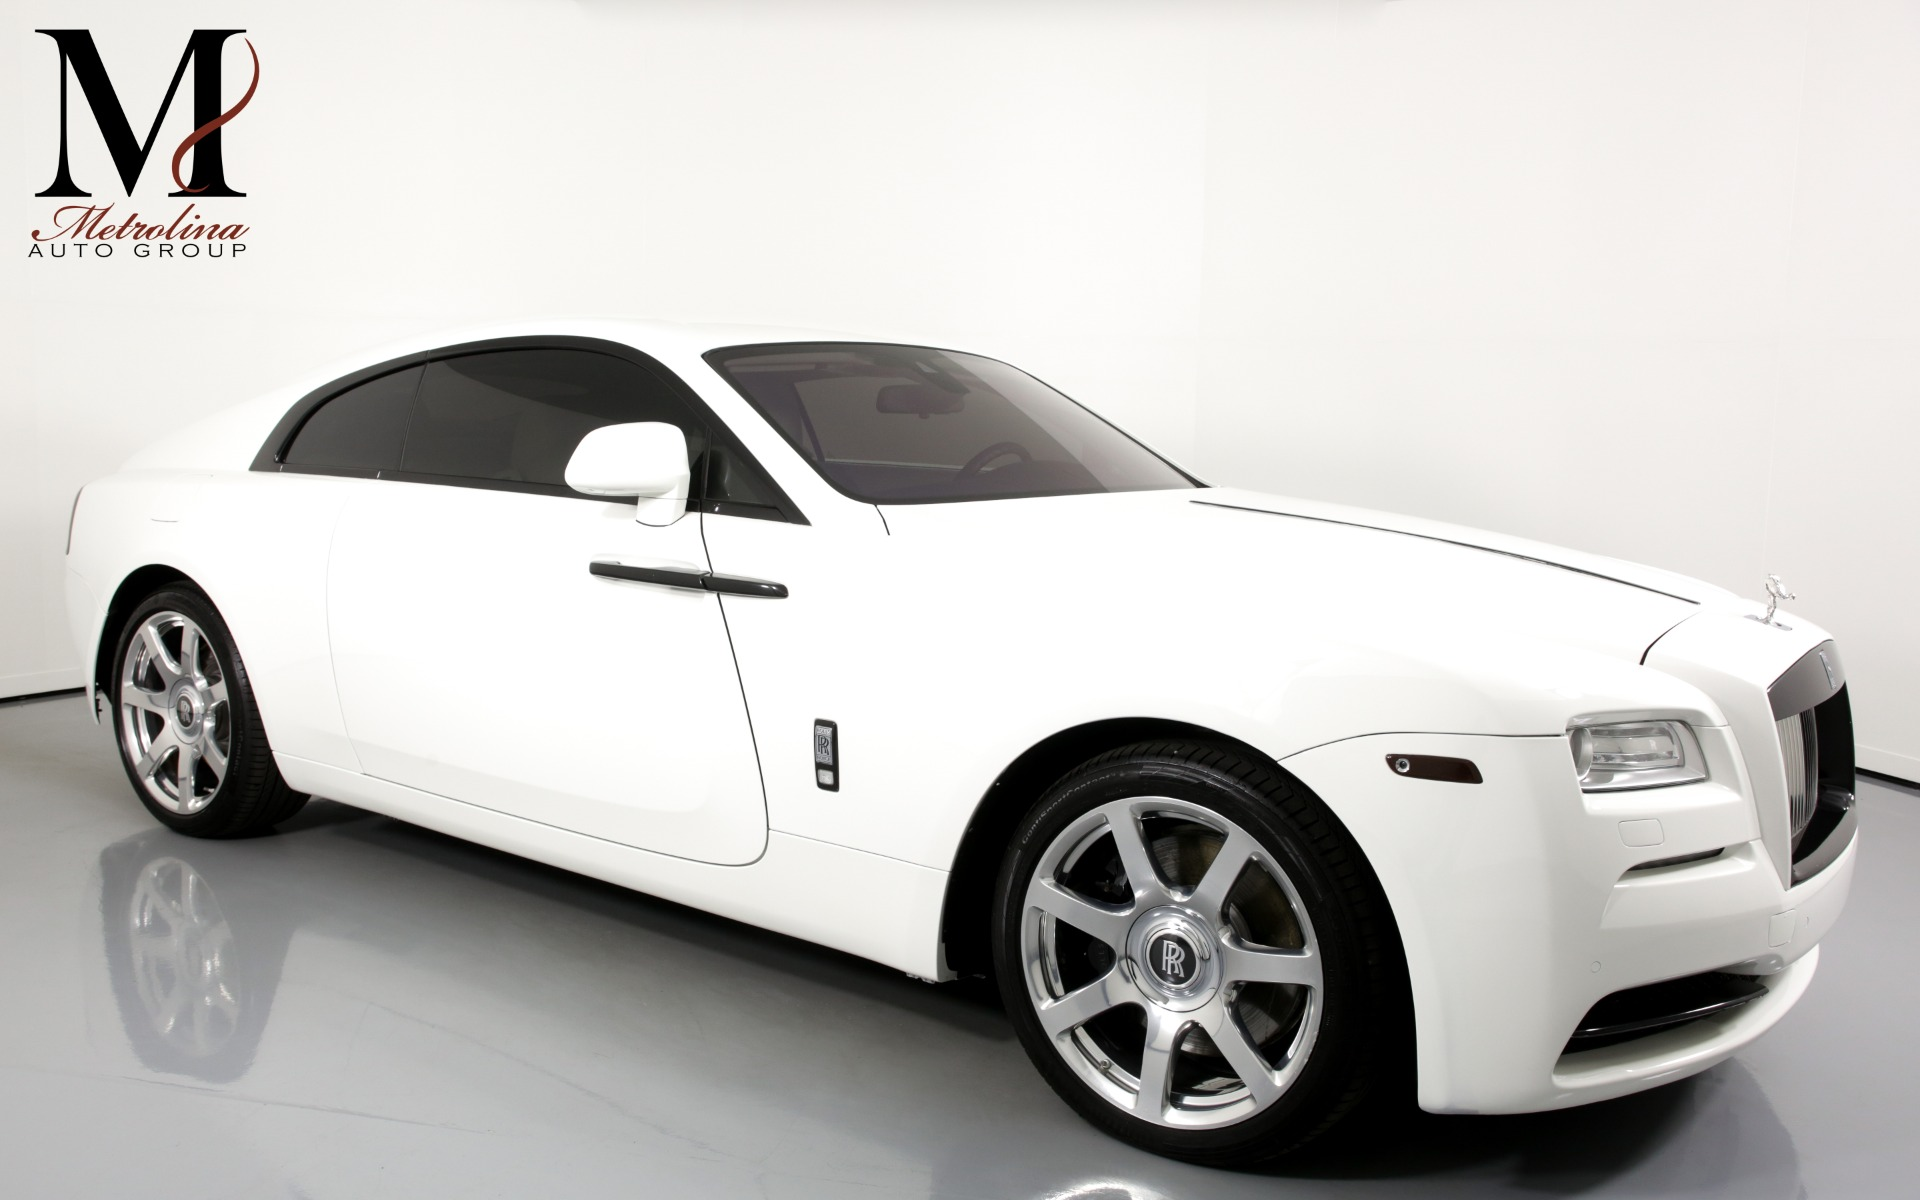 Used 2014 Rolls-Royce Wraith Base 2dr Coupe for sale $153,996 at Metrolina Auto Group in Charlotte NC 28217 - 1